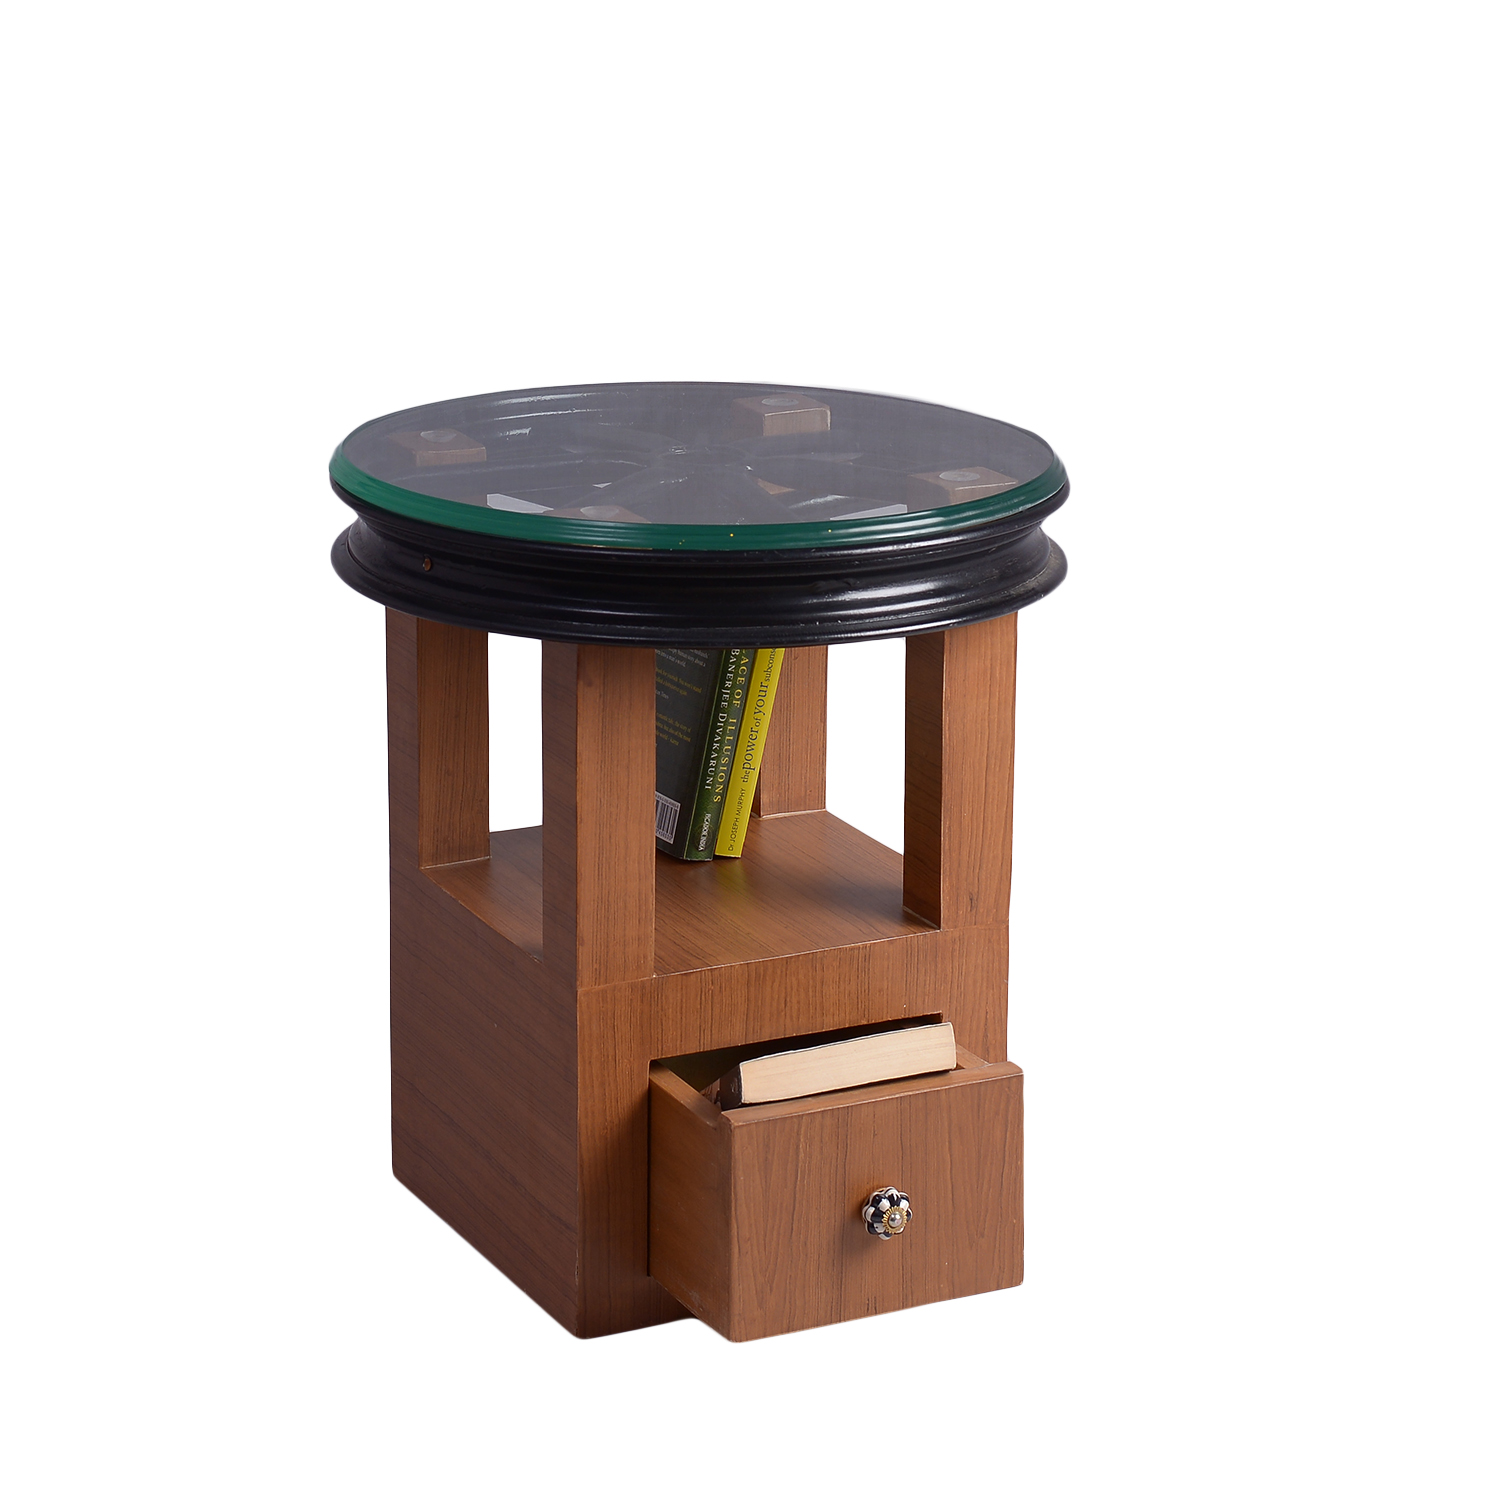 Buy bicycle wheel table at 7 off in india kraftly may for Bicycle wheel table